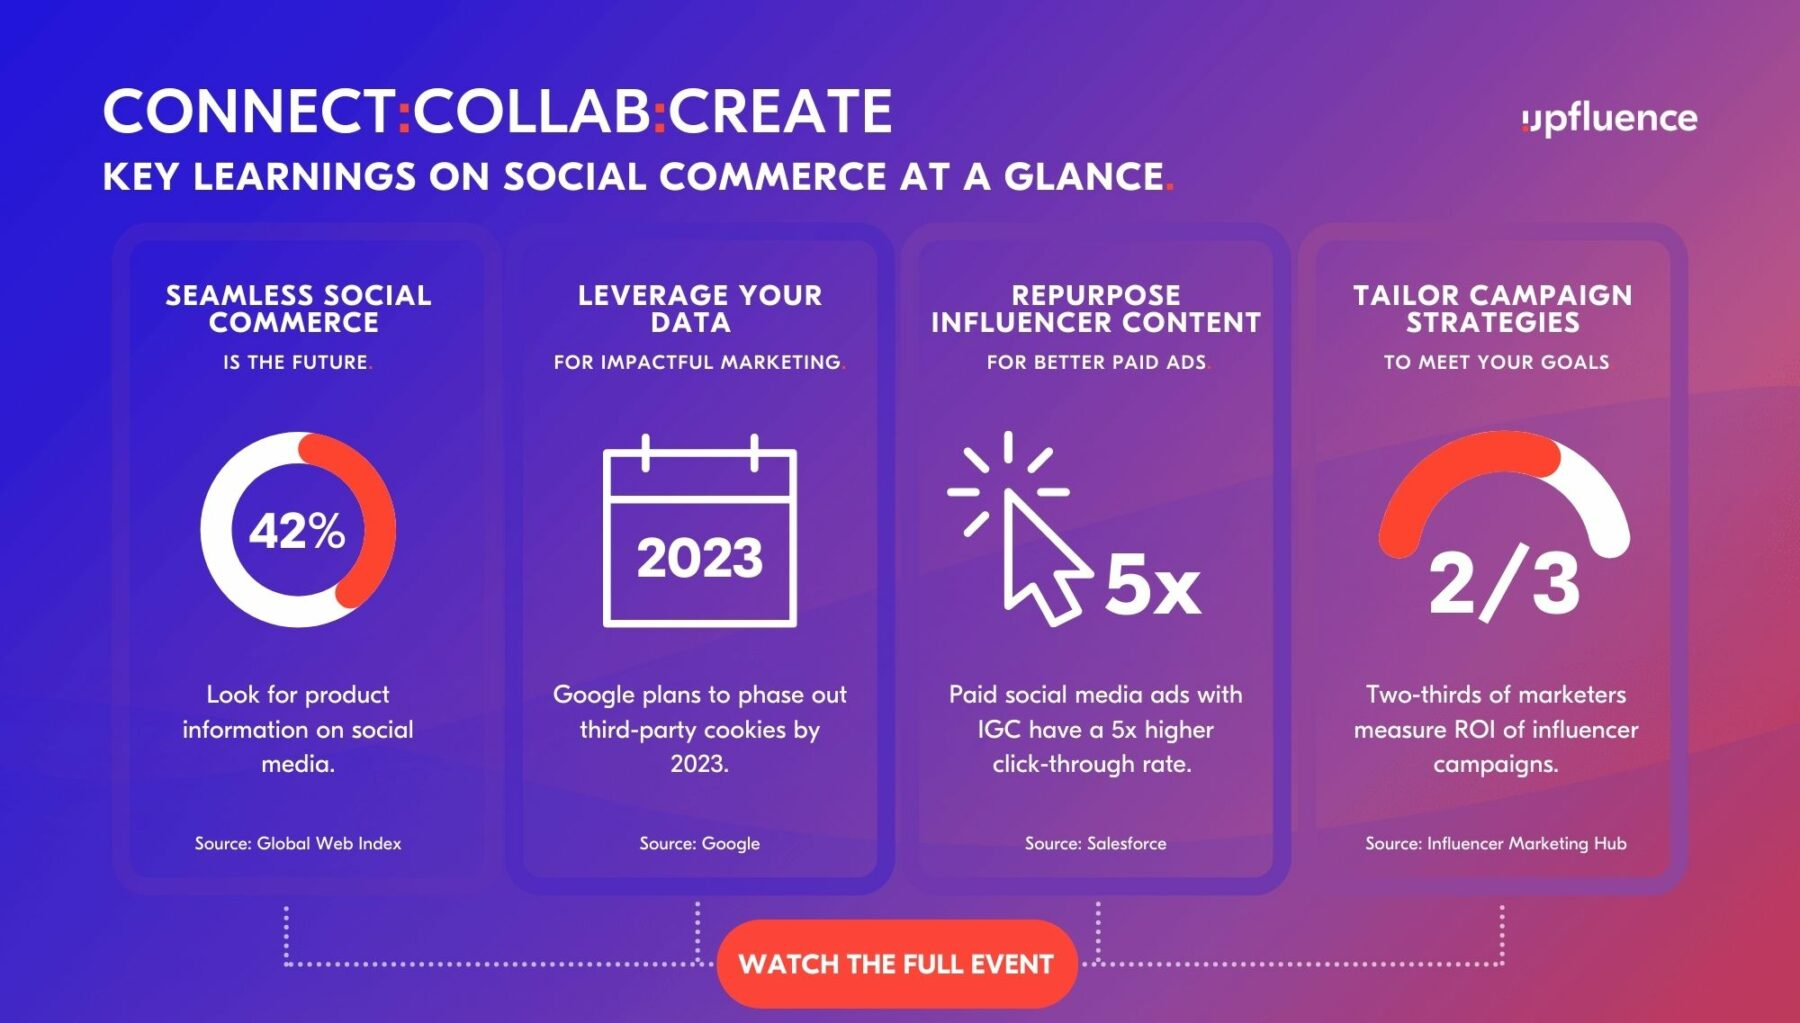 connect:collab:create takeaways